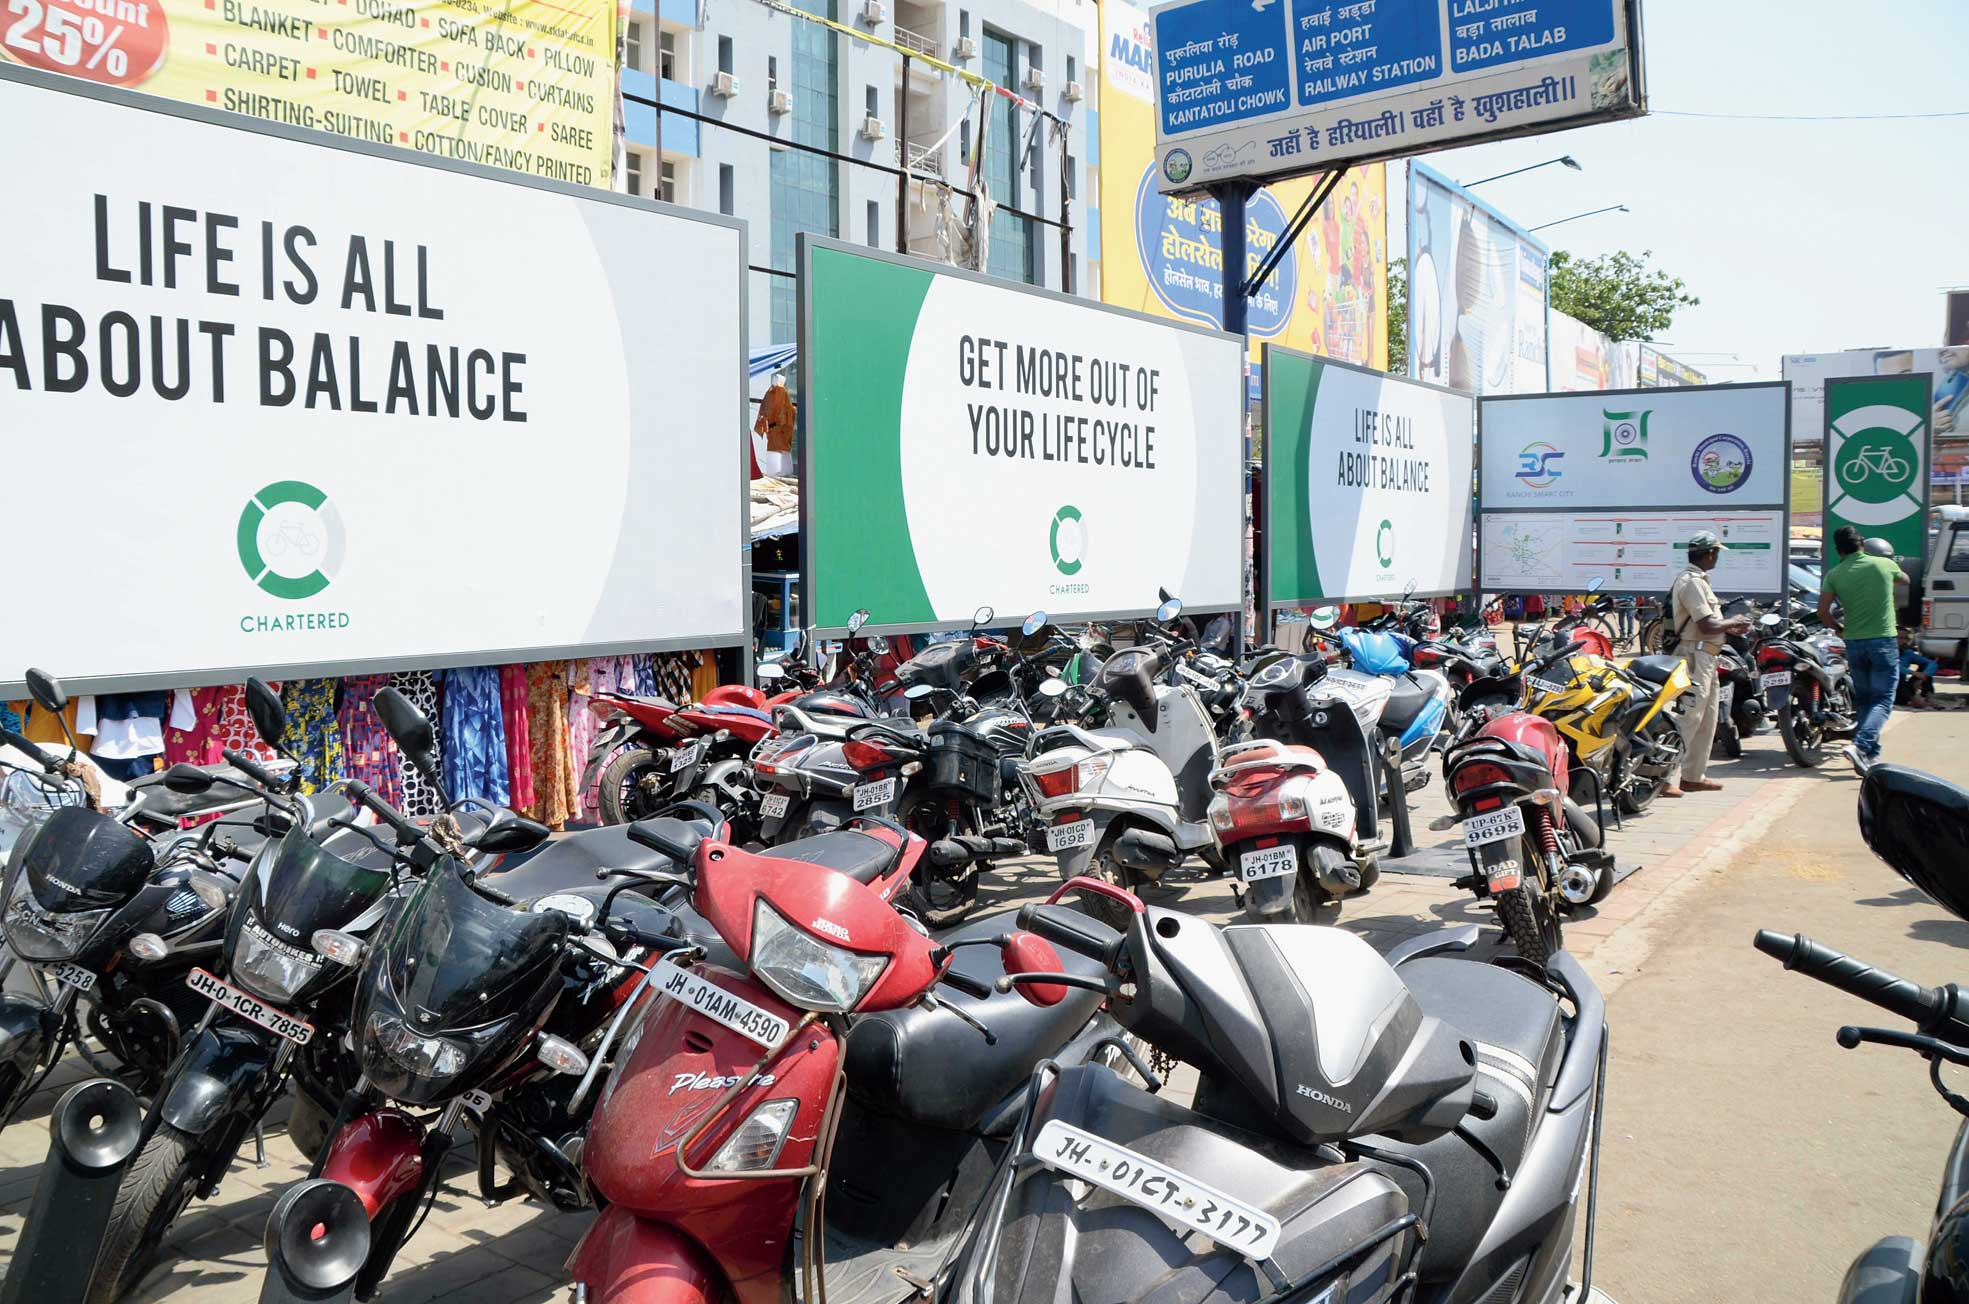 Two-wheelers parked at the smart cycle stand on Main Road in Ranchi on Sunday.